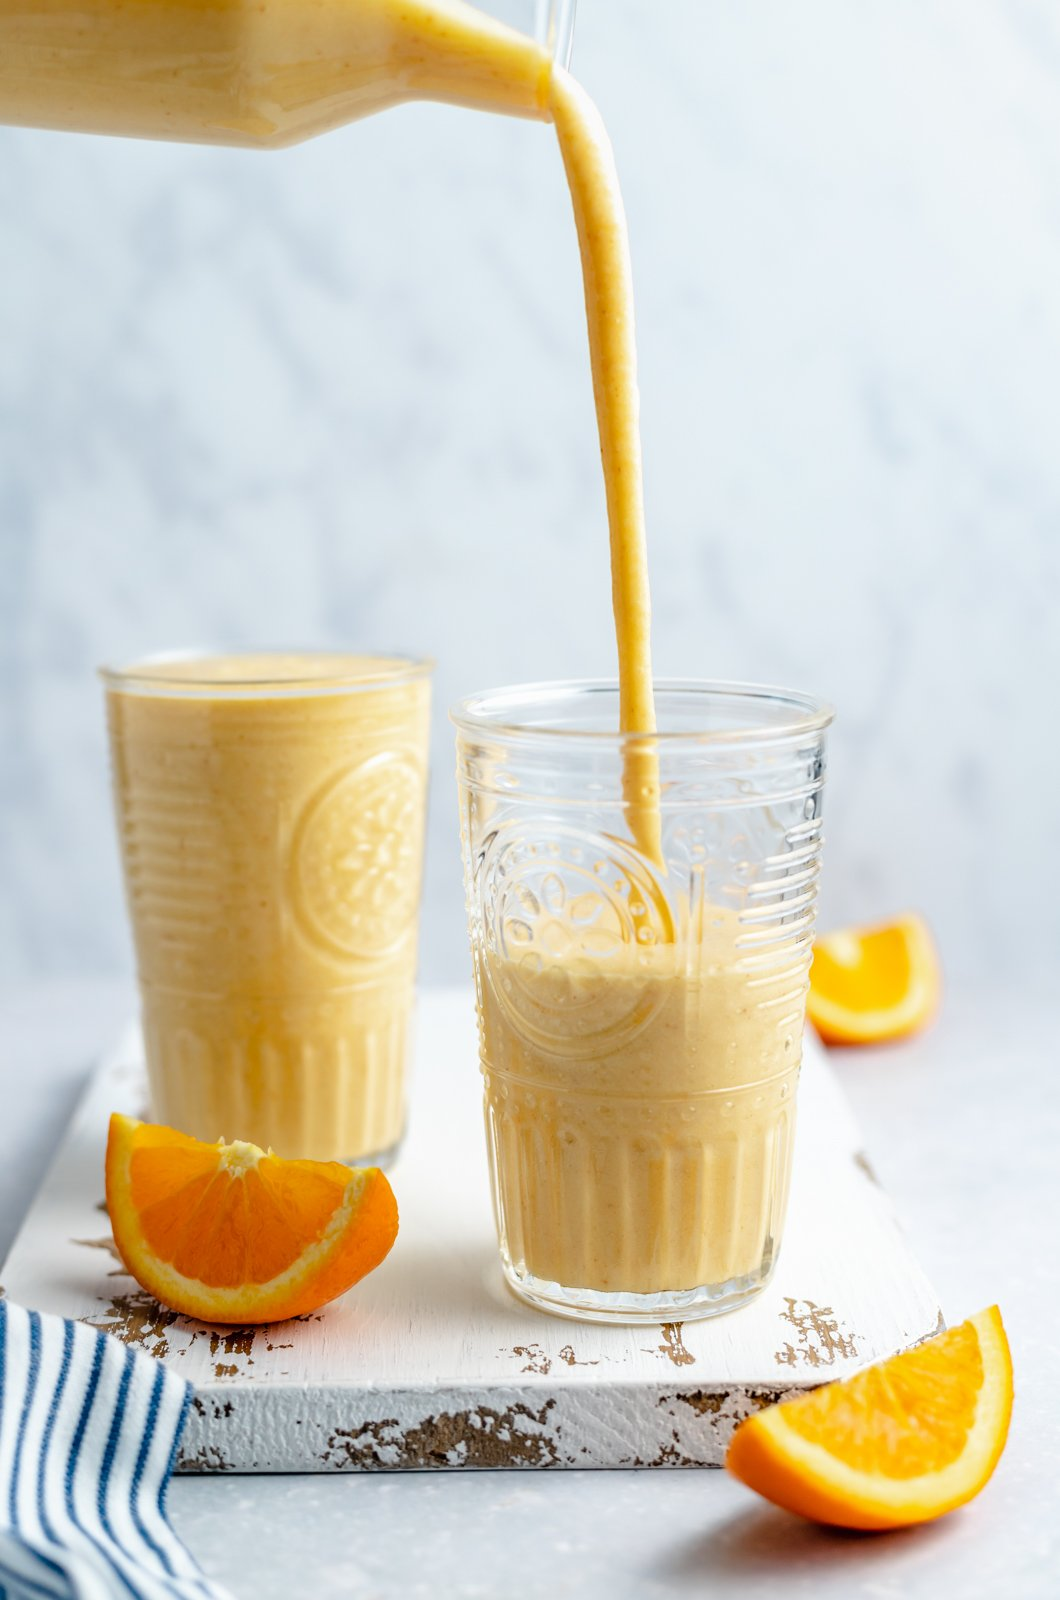 pouring an orange smoothie into glasses